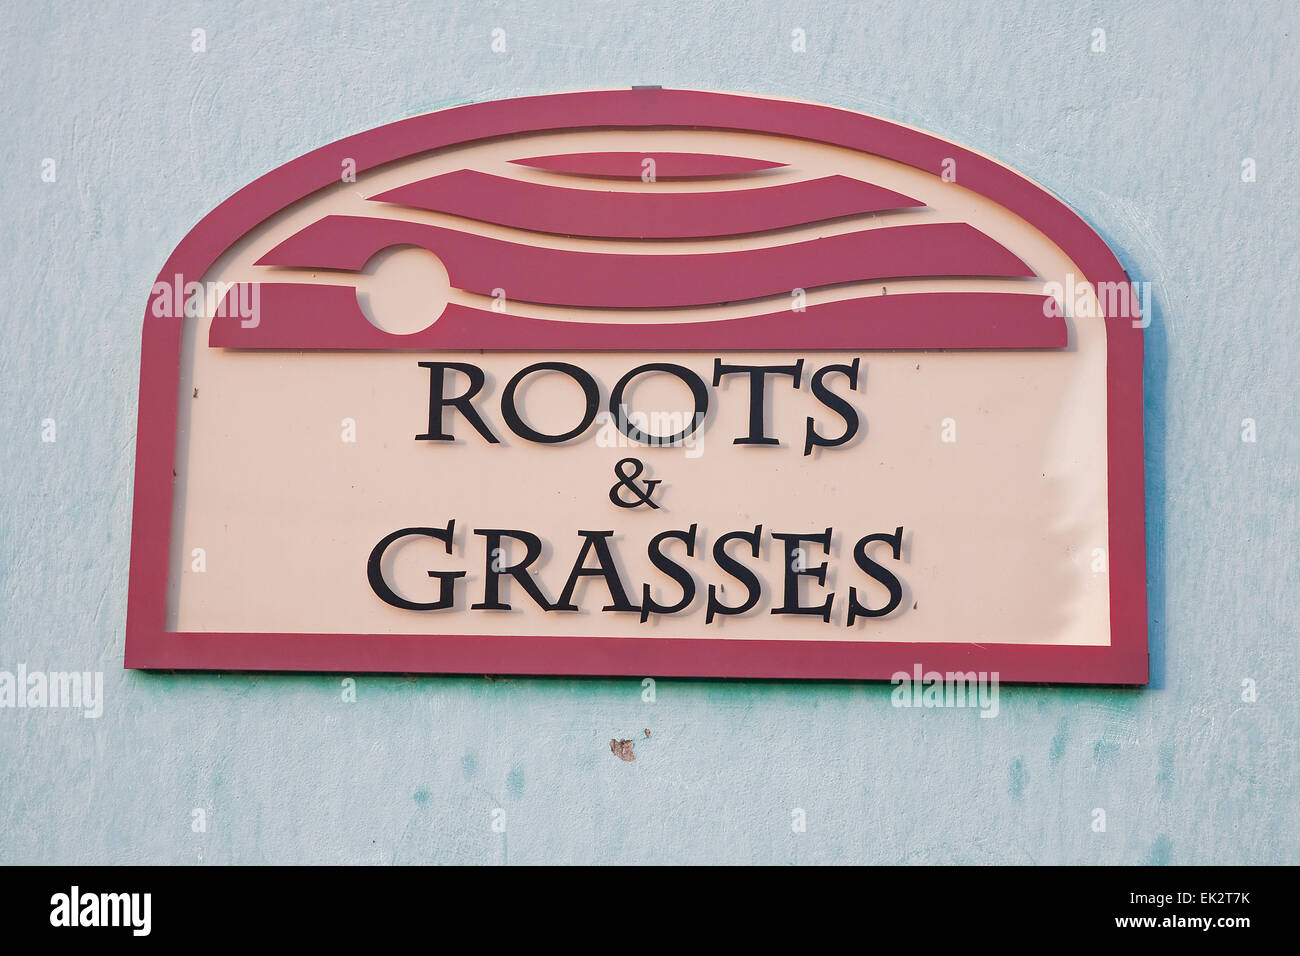 Roots and grasses sign in Barbados - Stock Image